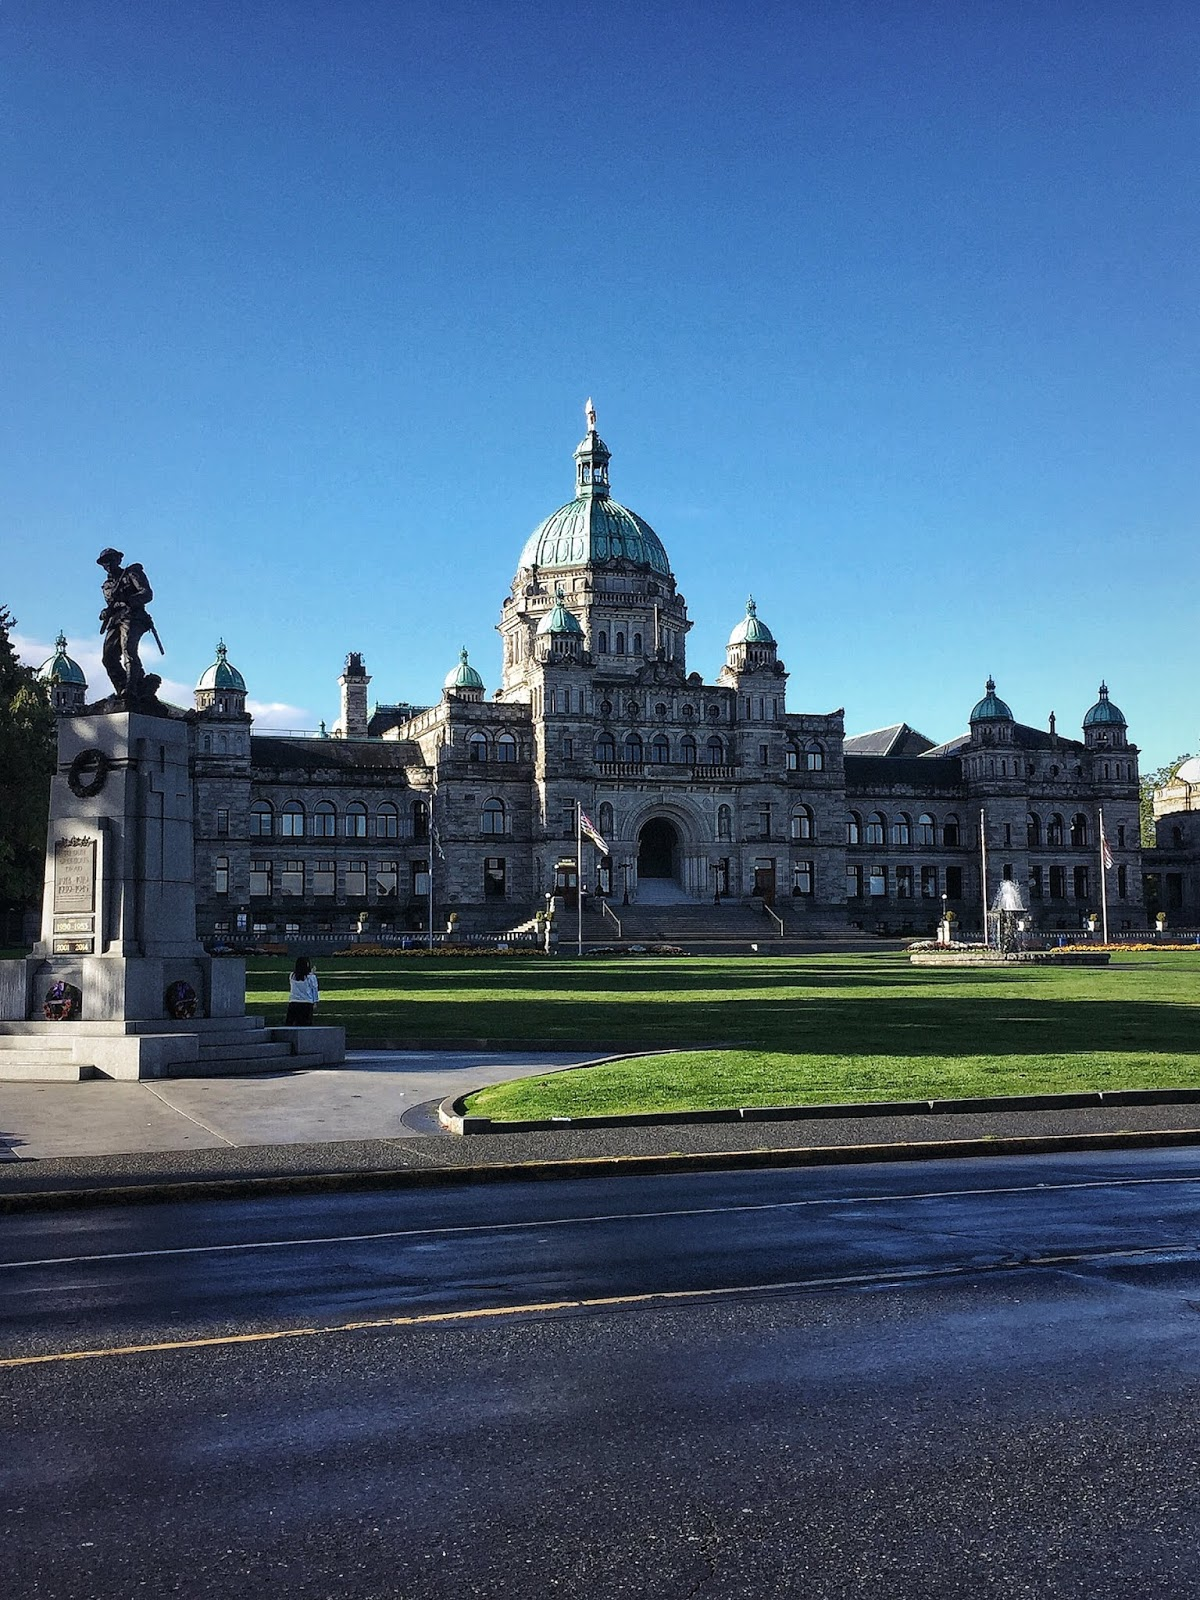 A travel diary of Victoria, B.C. by Vancouver travel blogger Aleesha Harris.